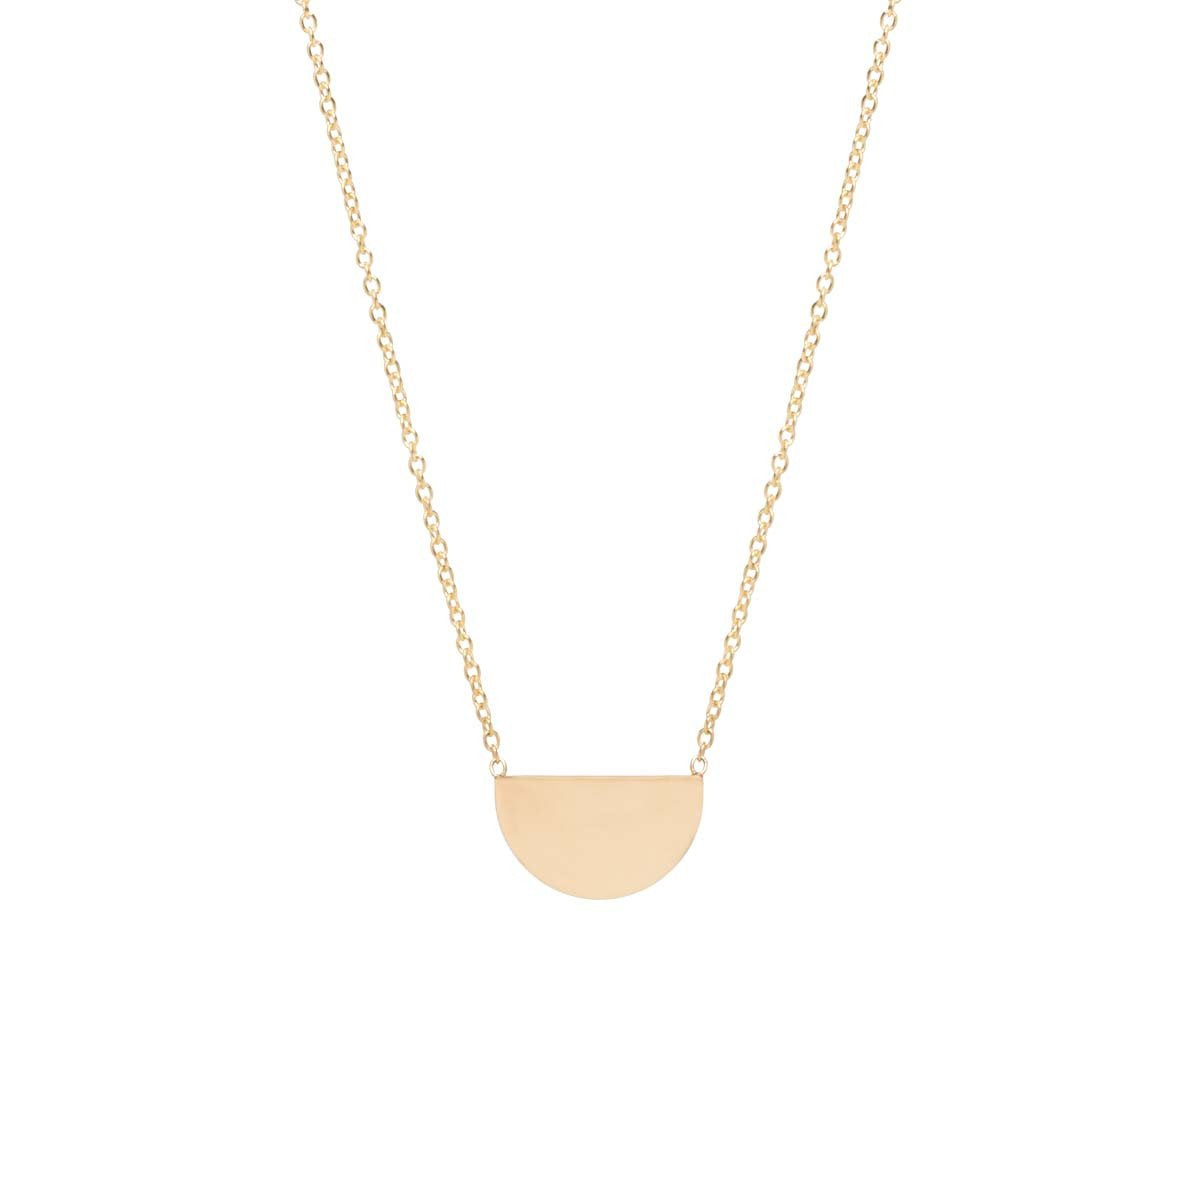 Zoe Chicco 14K Gold Small Horizon Necklace